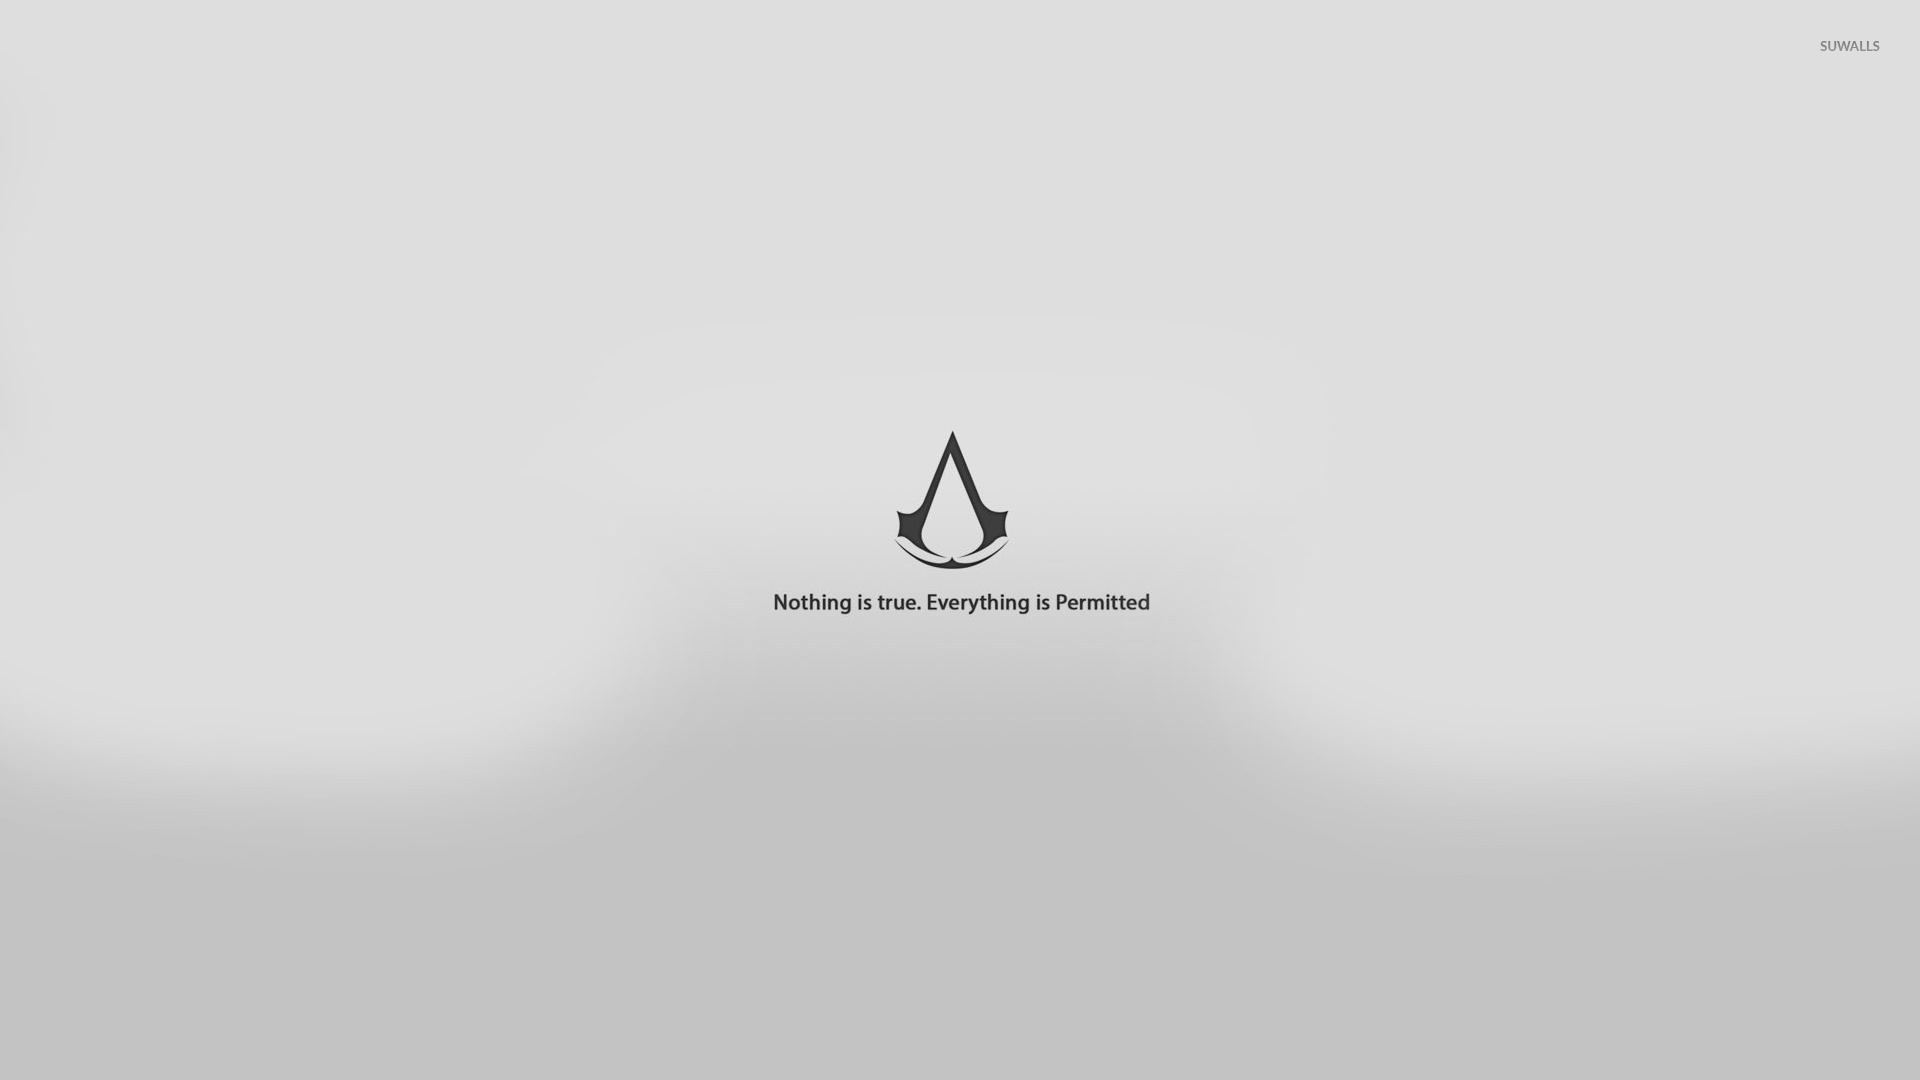 Assassins Creed Wallpaper Hd 1080p Nothing Is True Everything Is Permitted Wallpaper Game